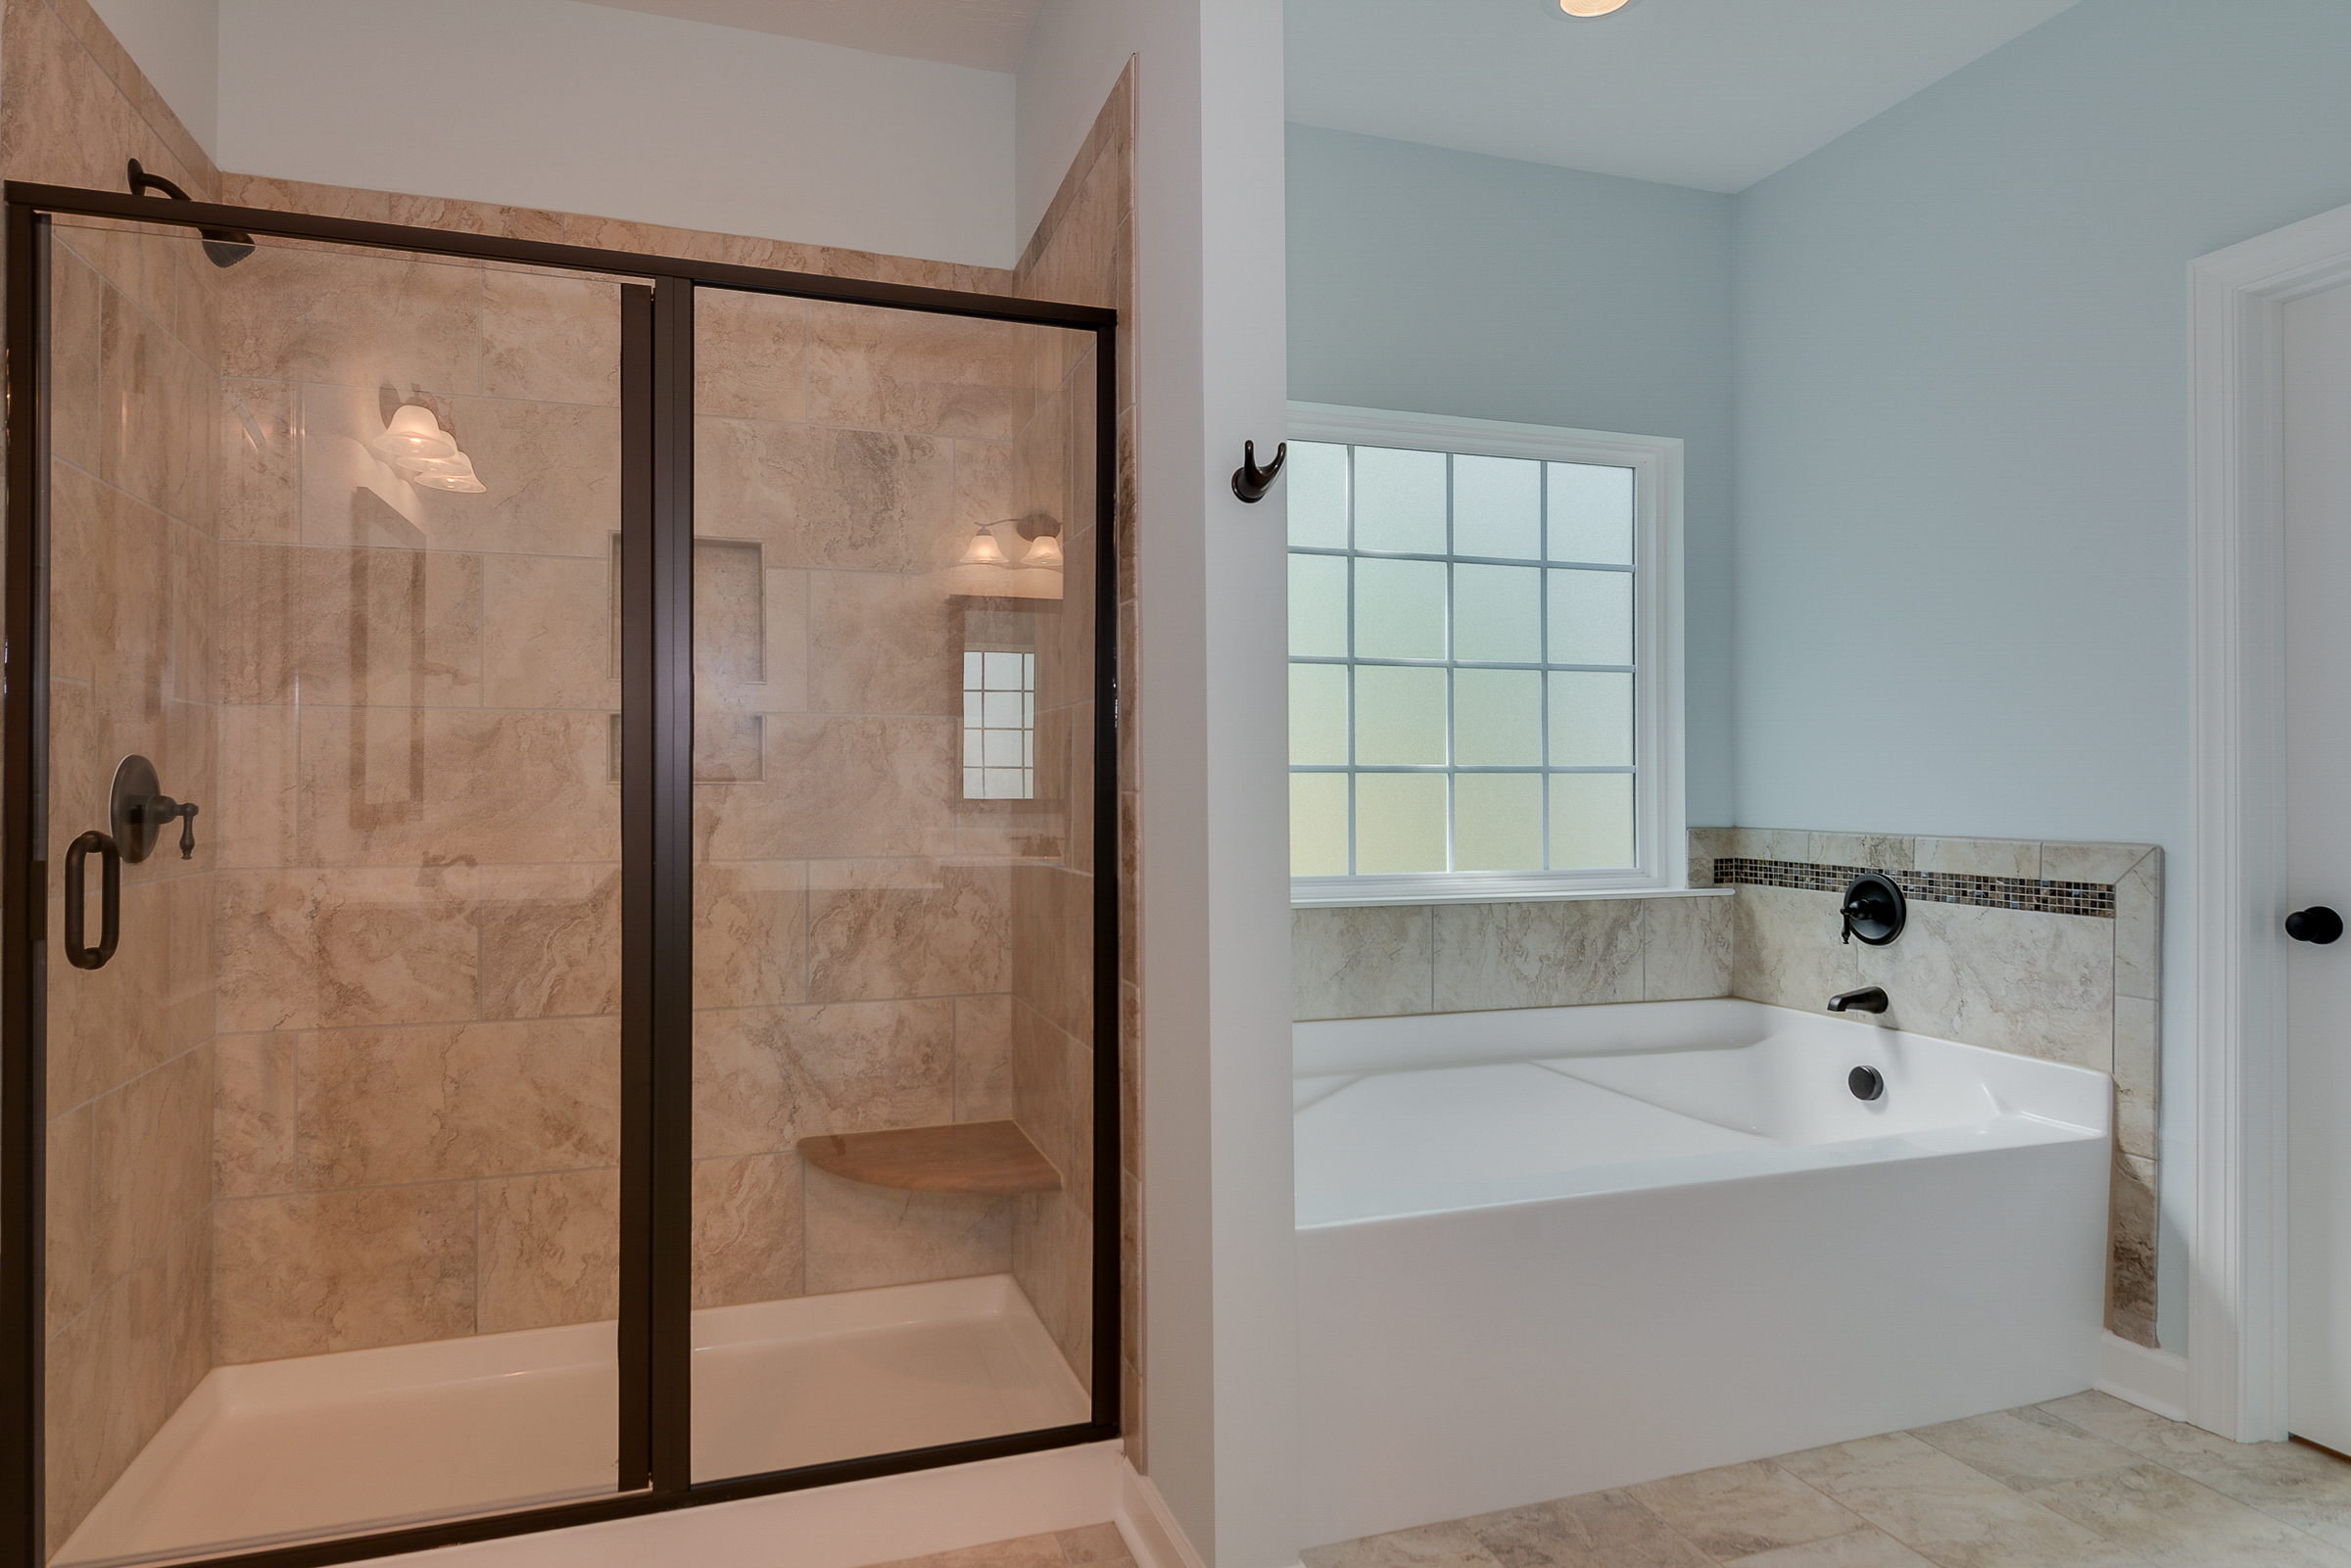 An image of the walkin shower and bath at Bergen place West Home.